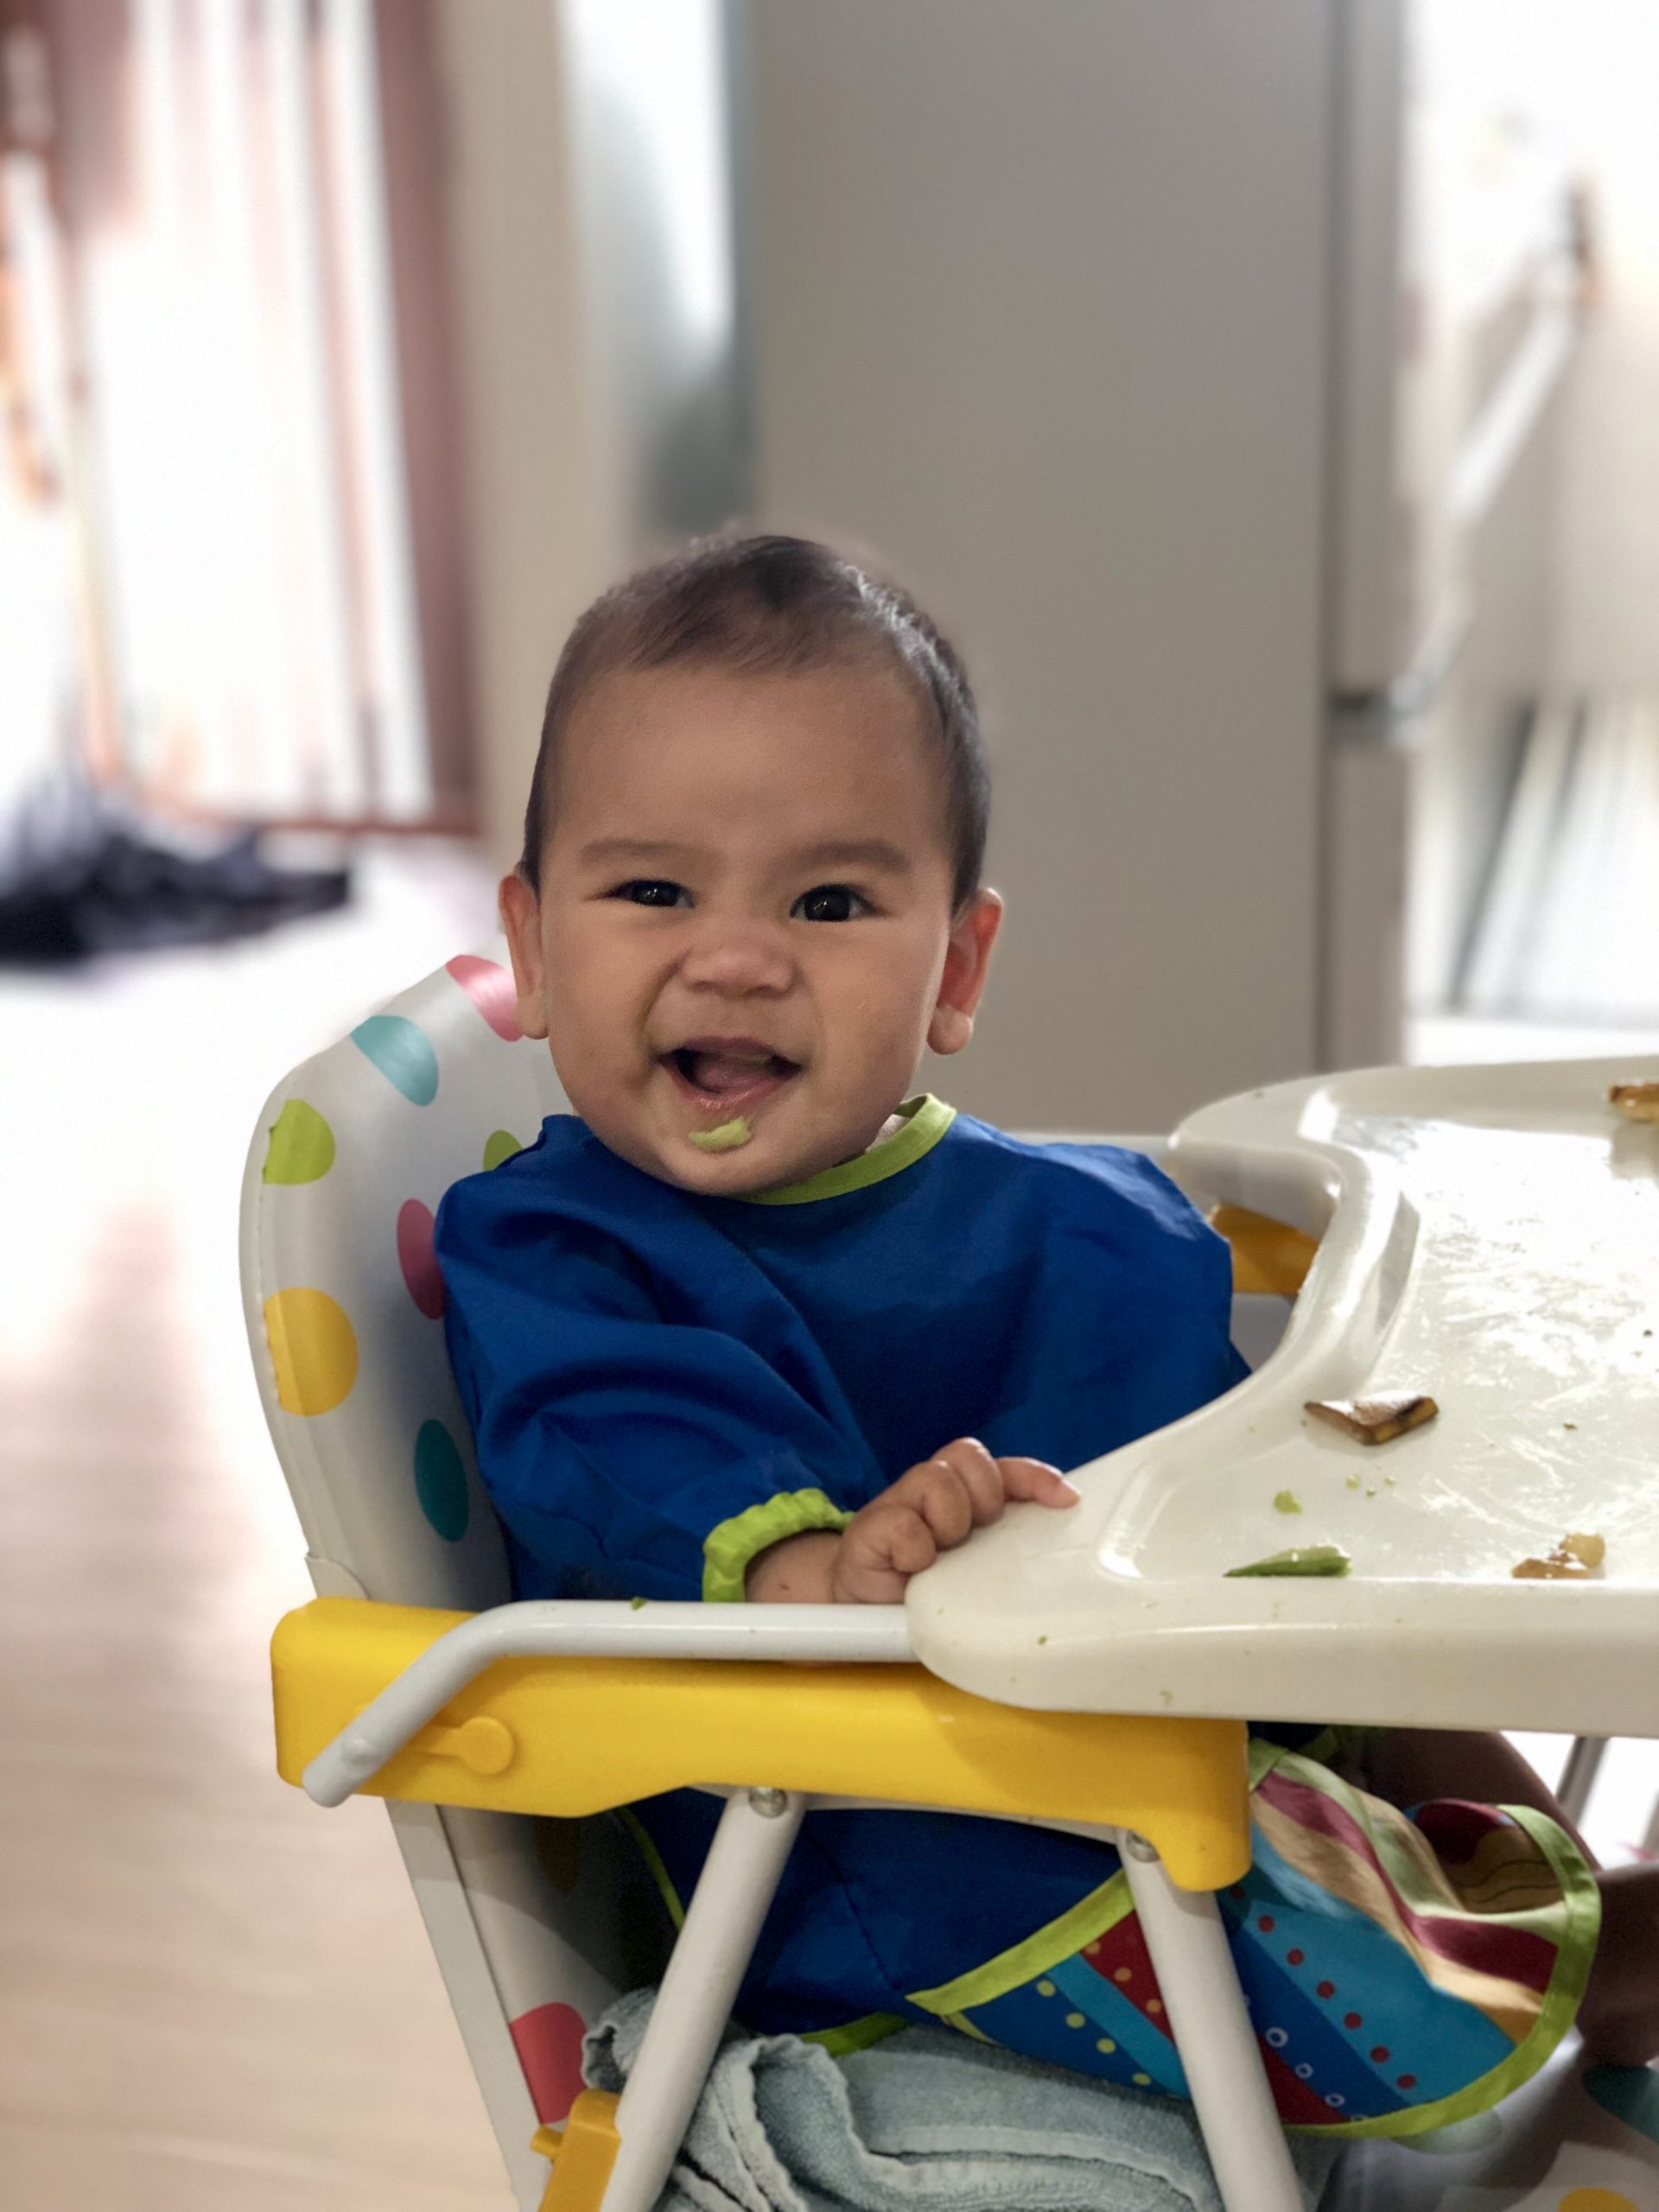 Baby sitting in a high chair